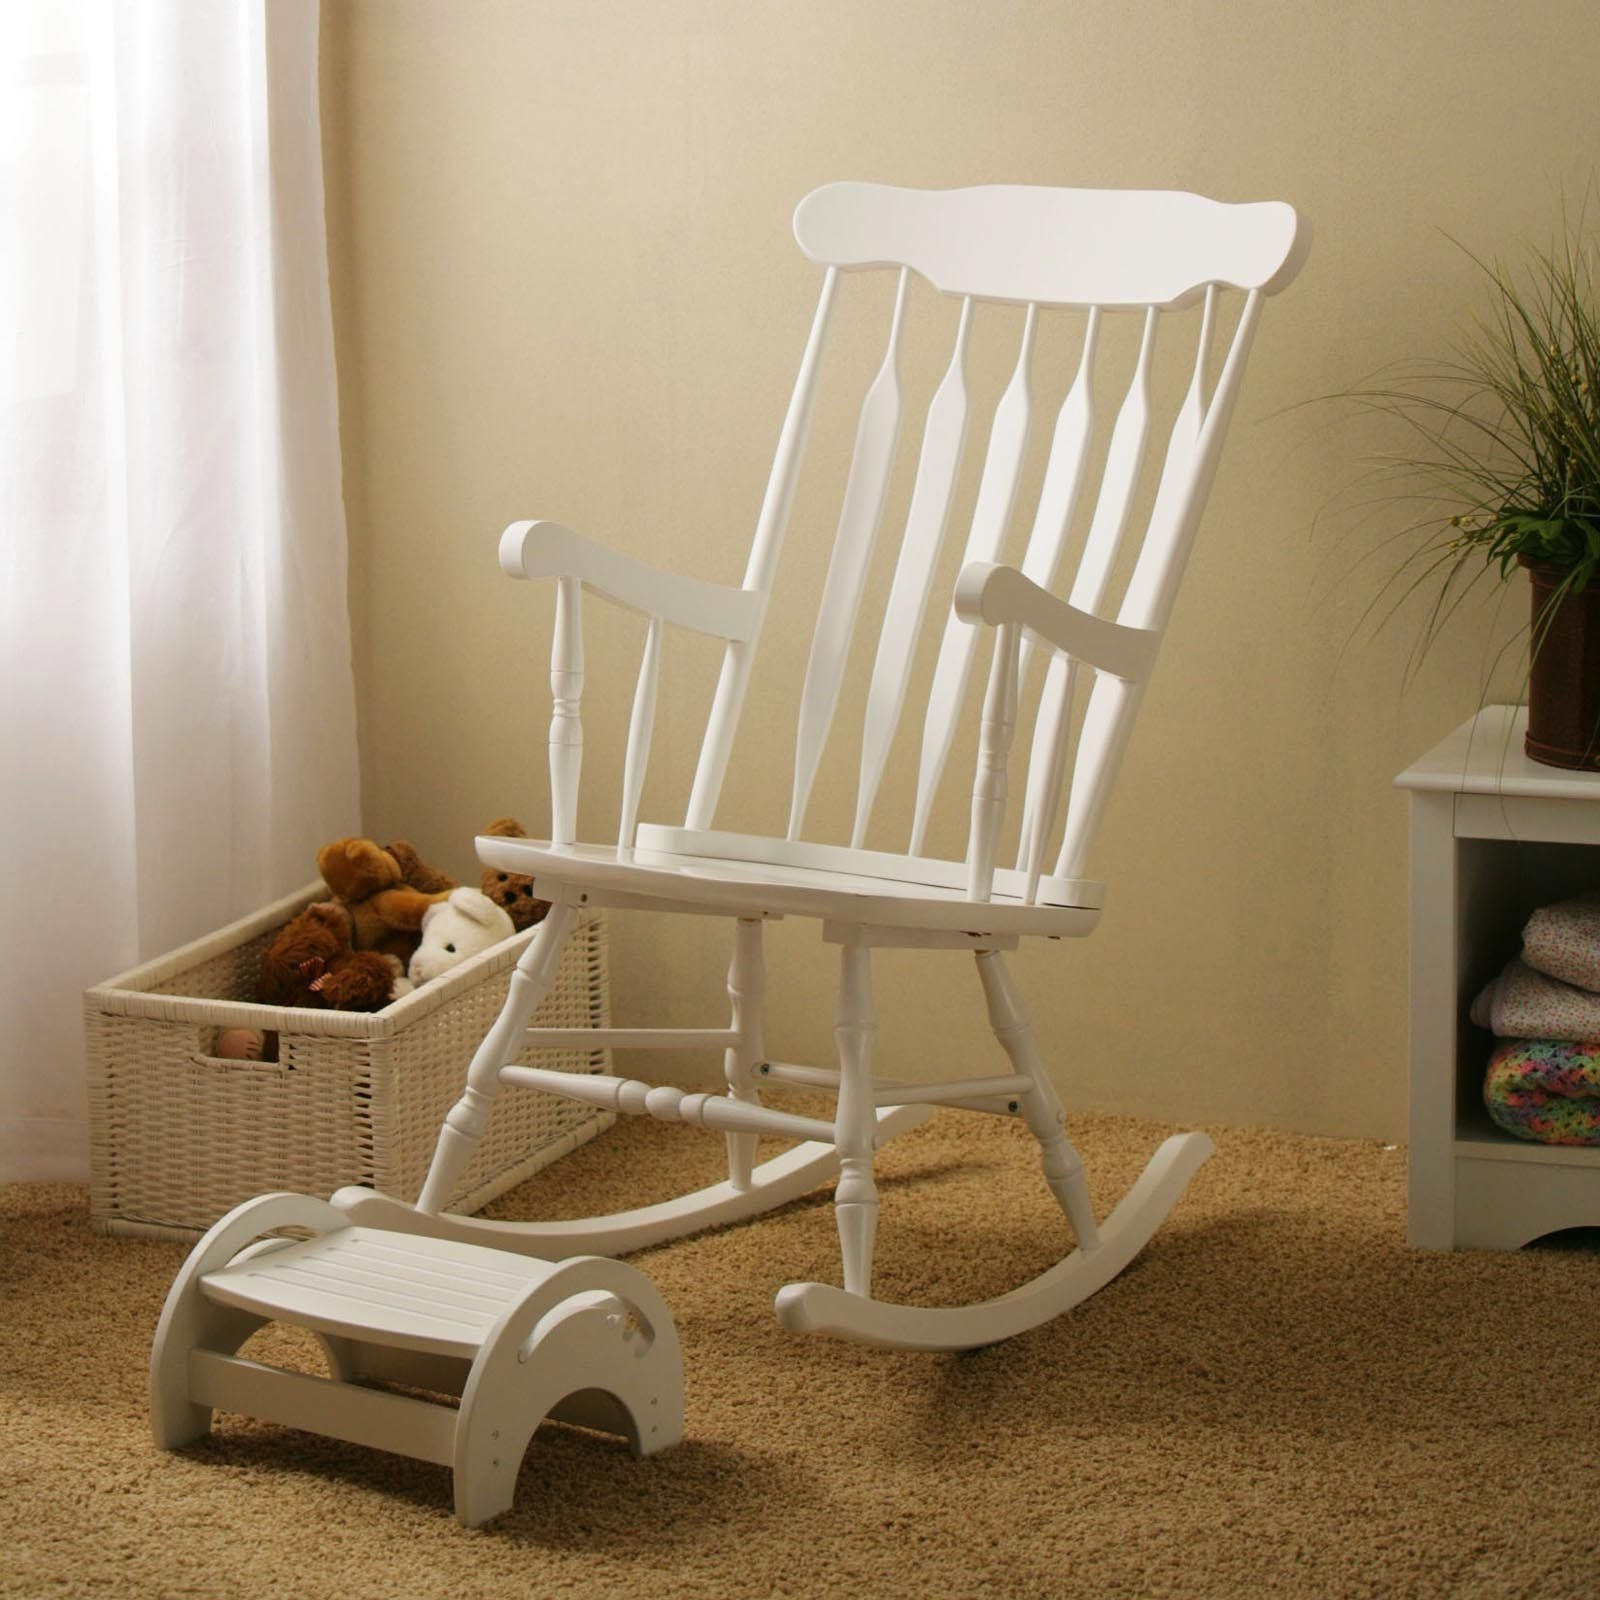 Fashionable Rocking A Newborn Baby To Sleep In A Comfy Nursery Chair Is A Great Throughout White Wicker Rocking Chair For Nursery (View 2 of 15)